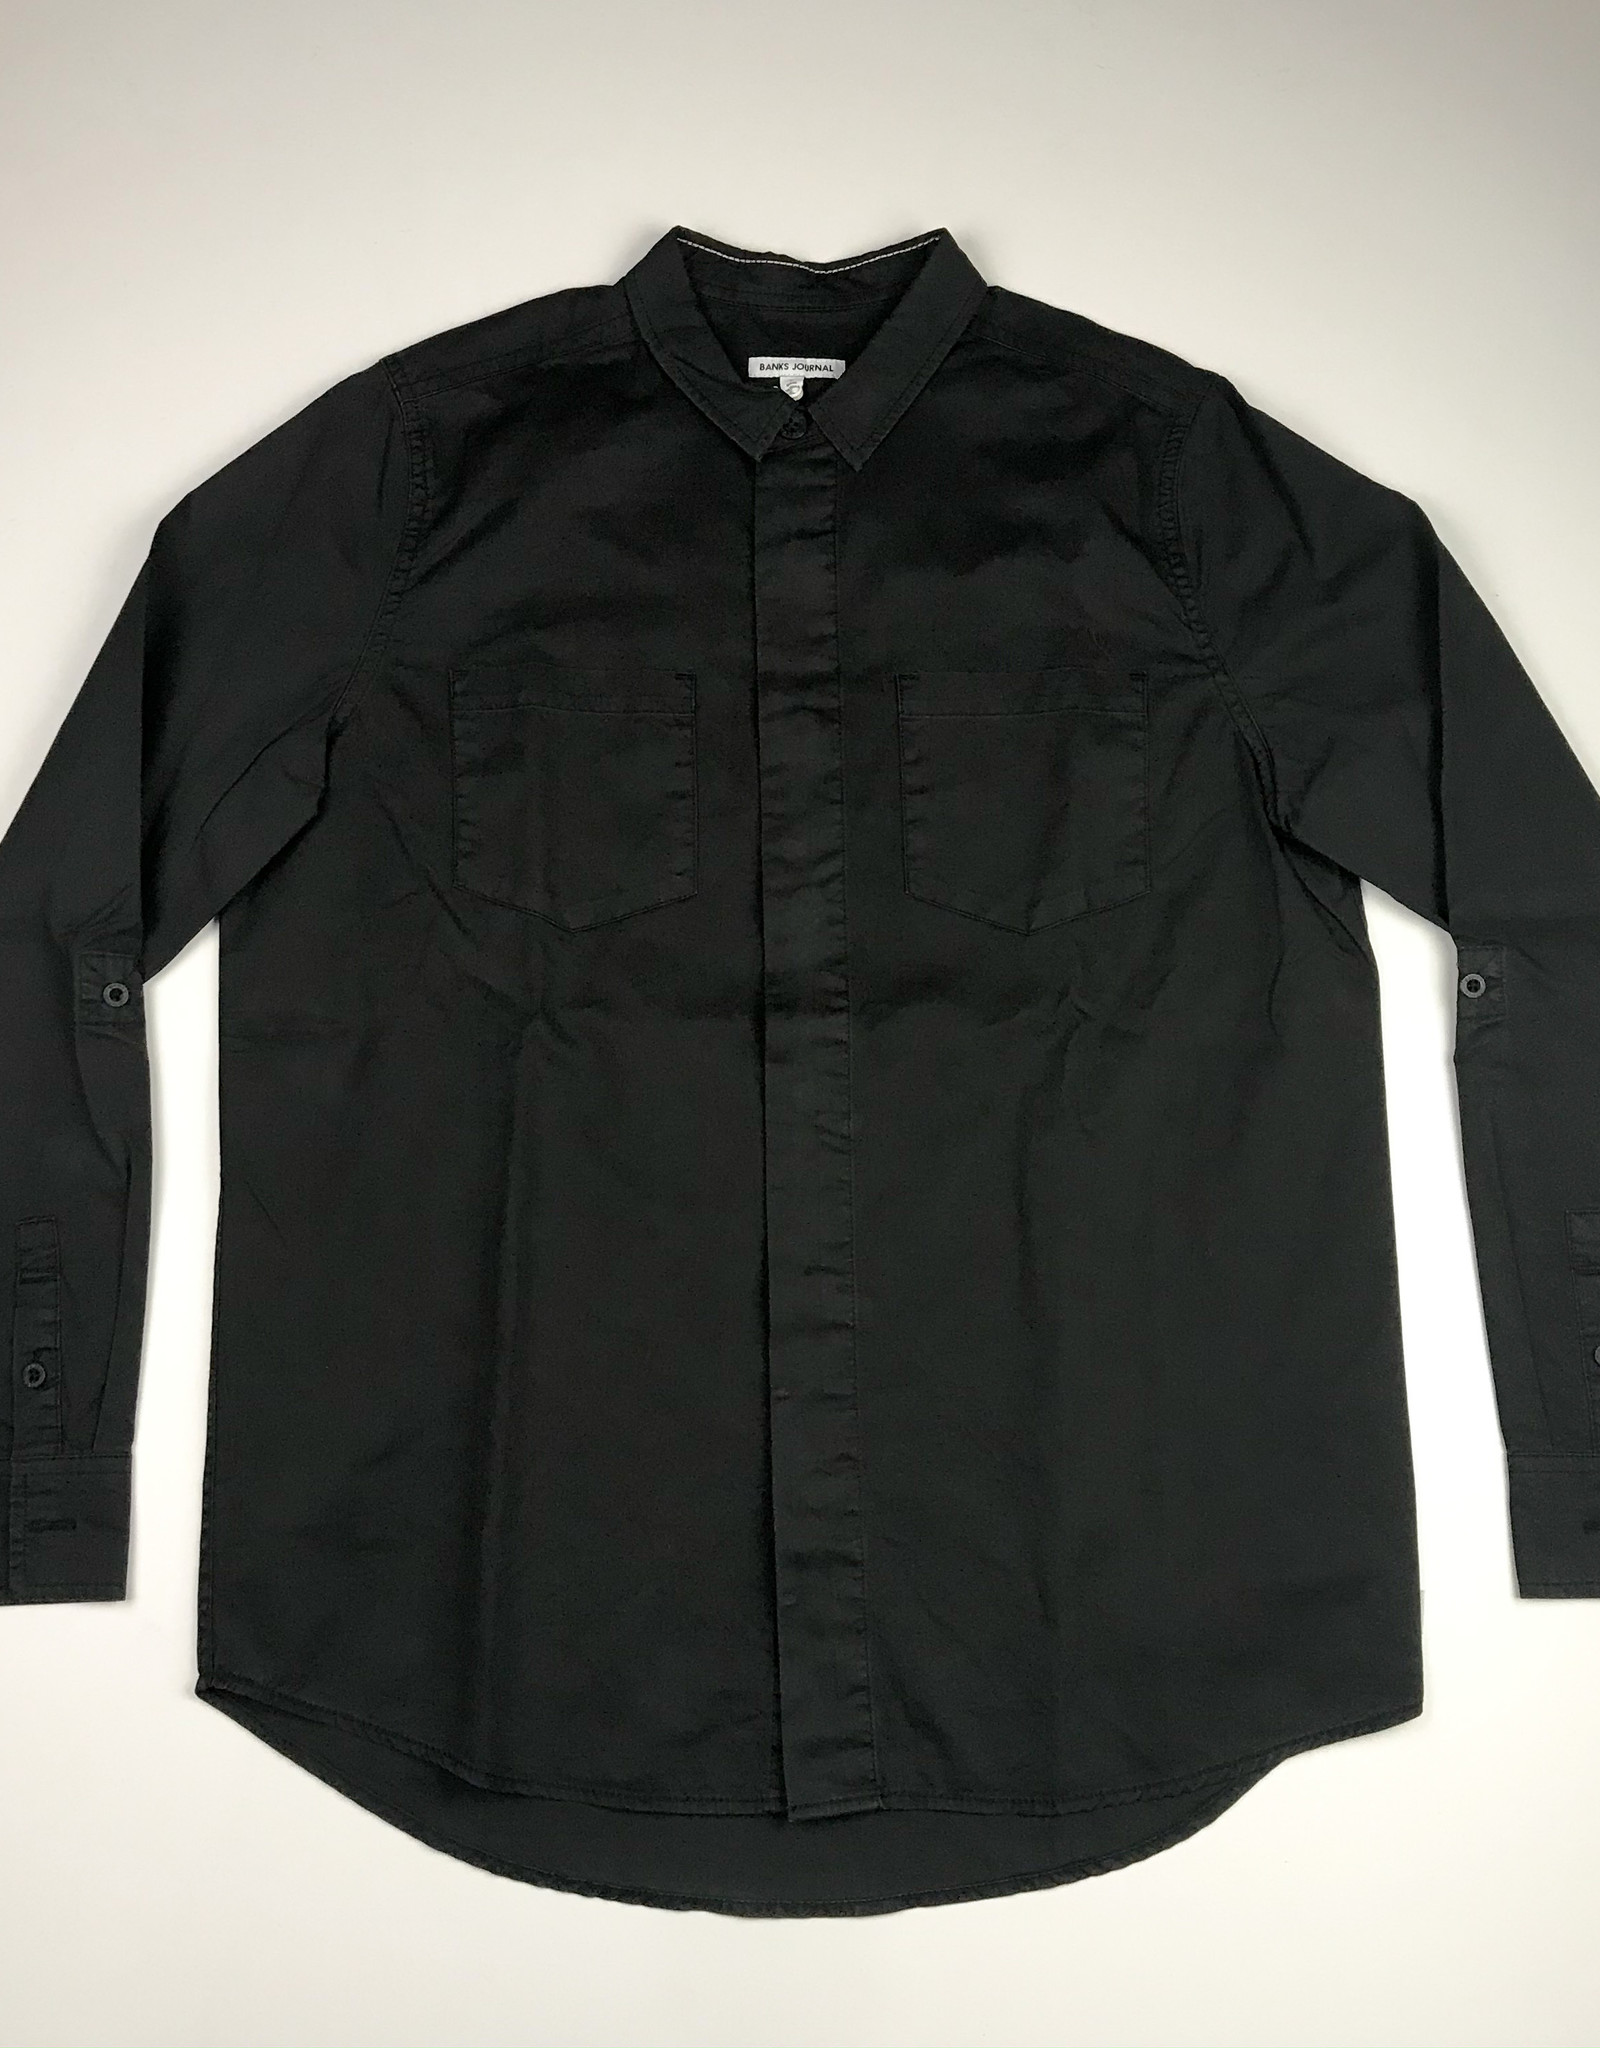 BANKS JOURNAL BANKS BRIGADE L/S BUTTON - DIRTY BLACK